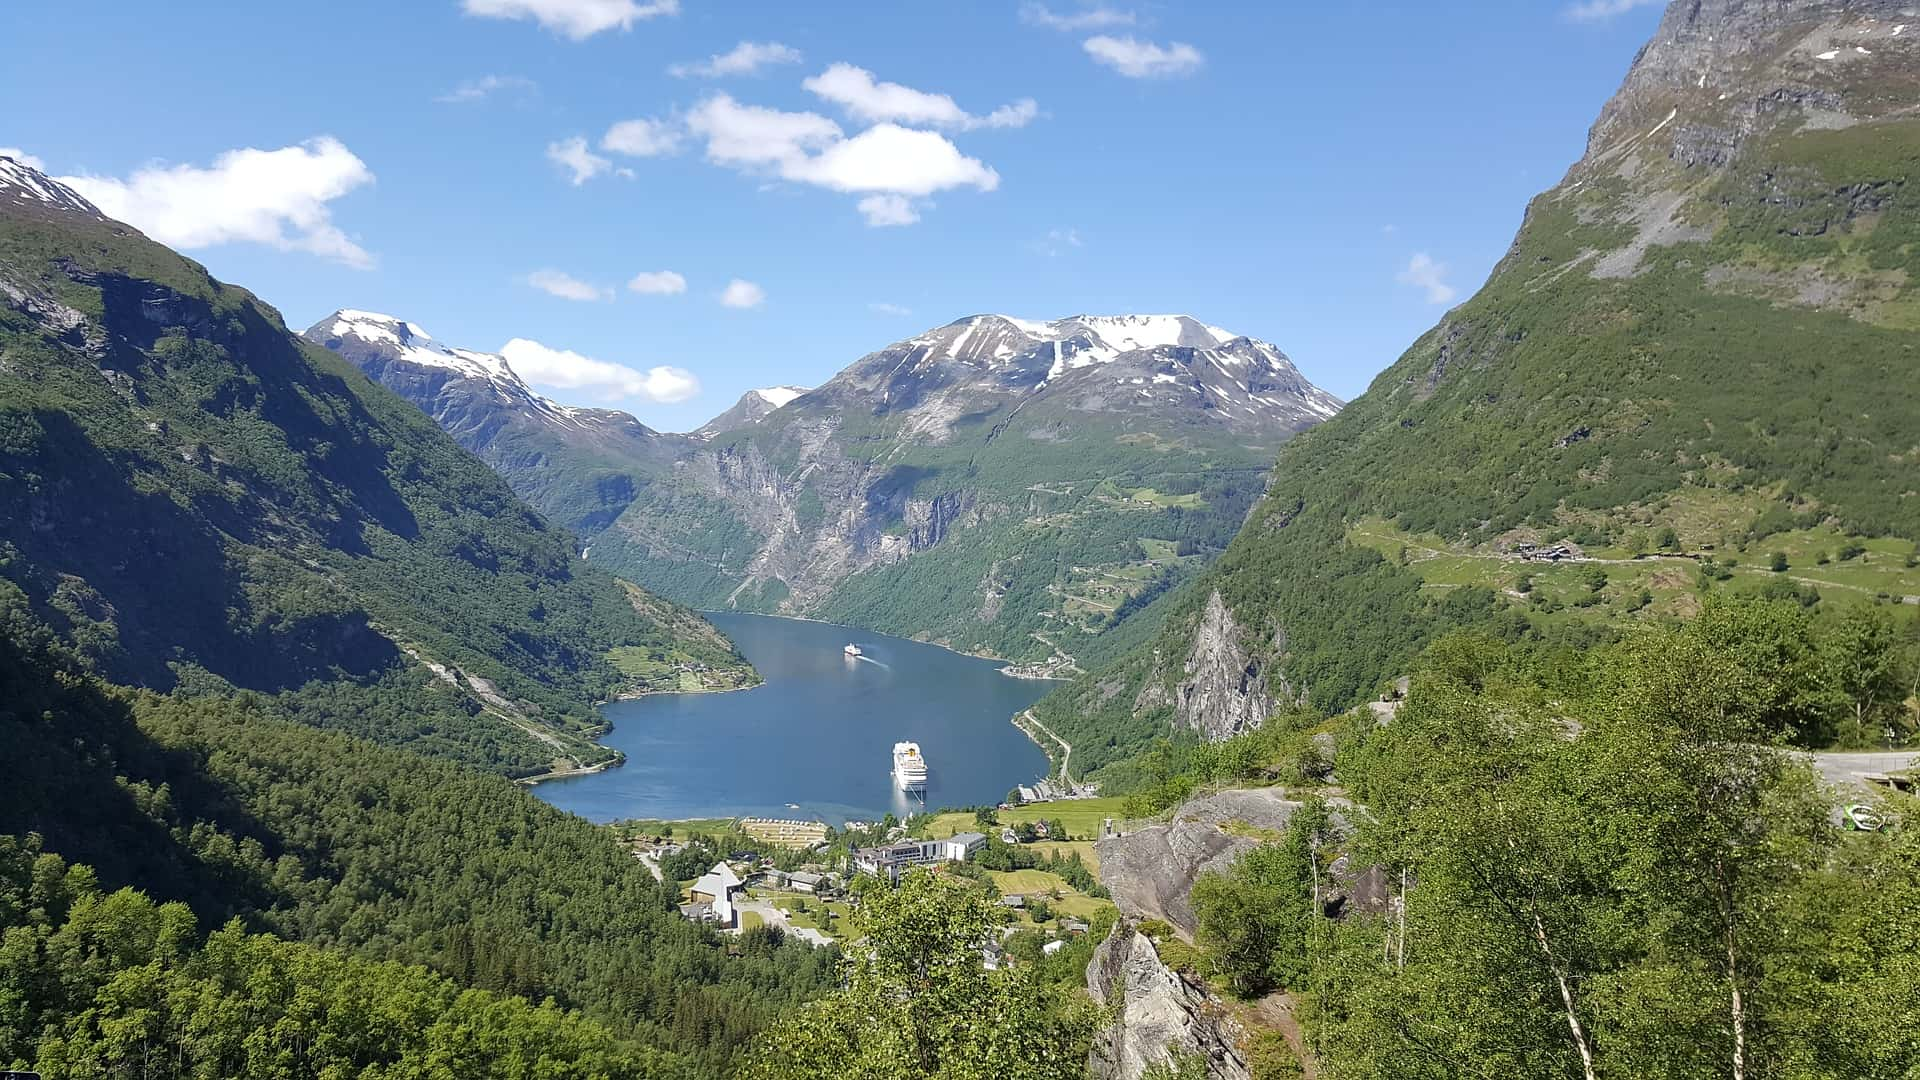 In the Geirangerfjord you can see some of the most famous waterfalls in the area, including the Bridal Fall and the Seven Sisters.